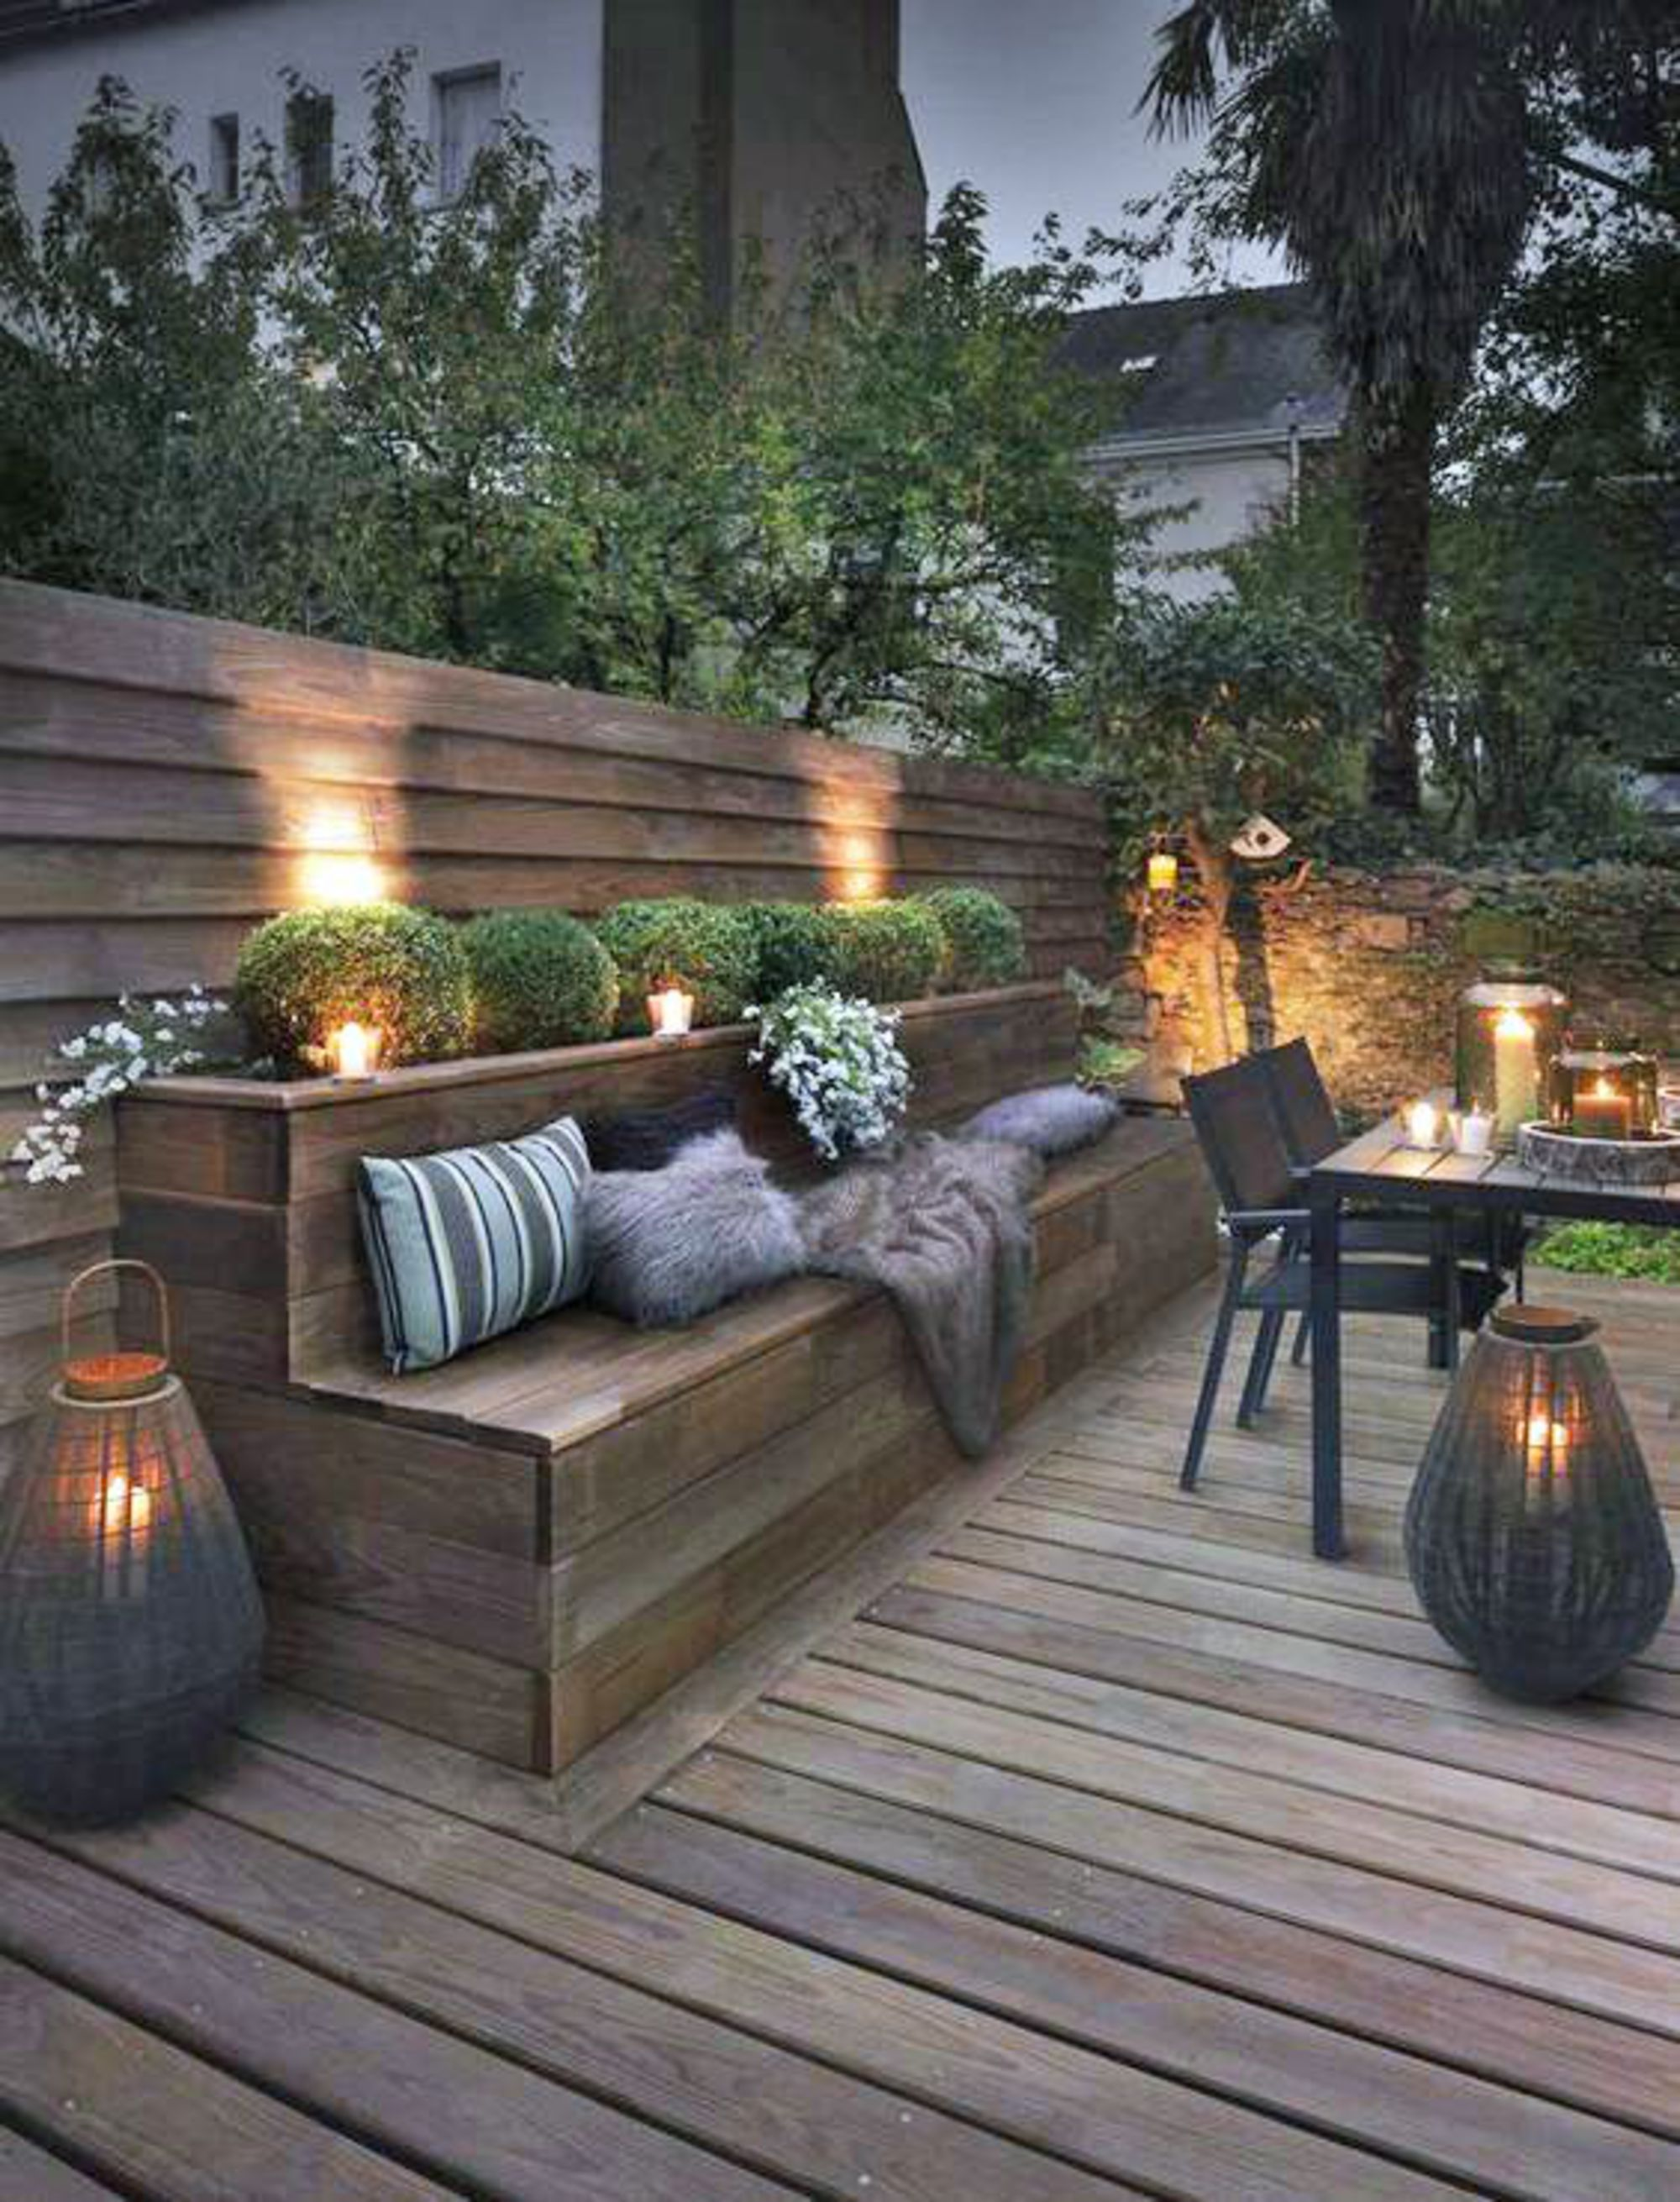 holzbank terrasse pinterest garten terrasse und garten ideen. Black Bedroom Furniture Sets. Home Design Ideas